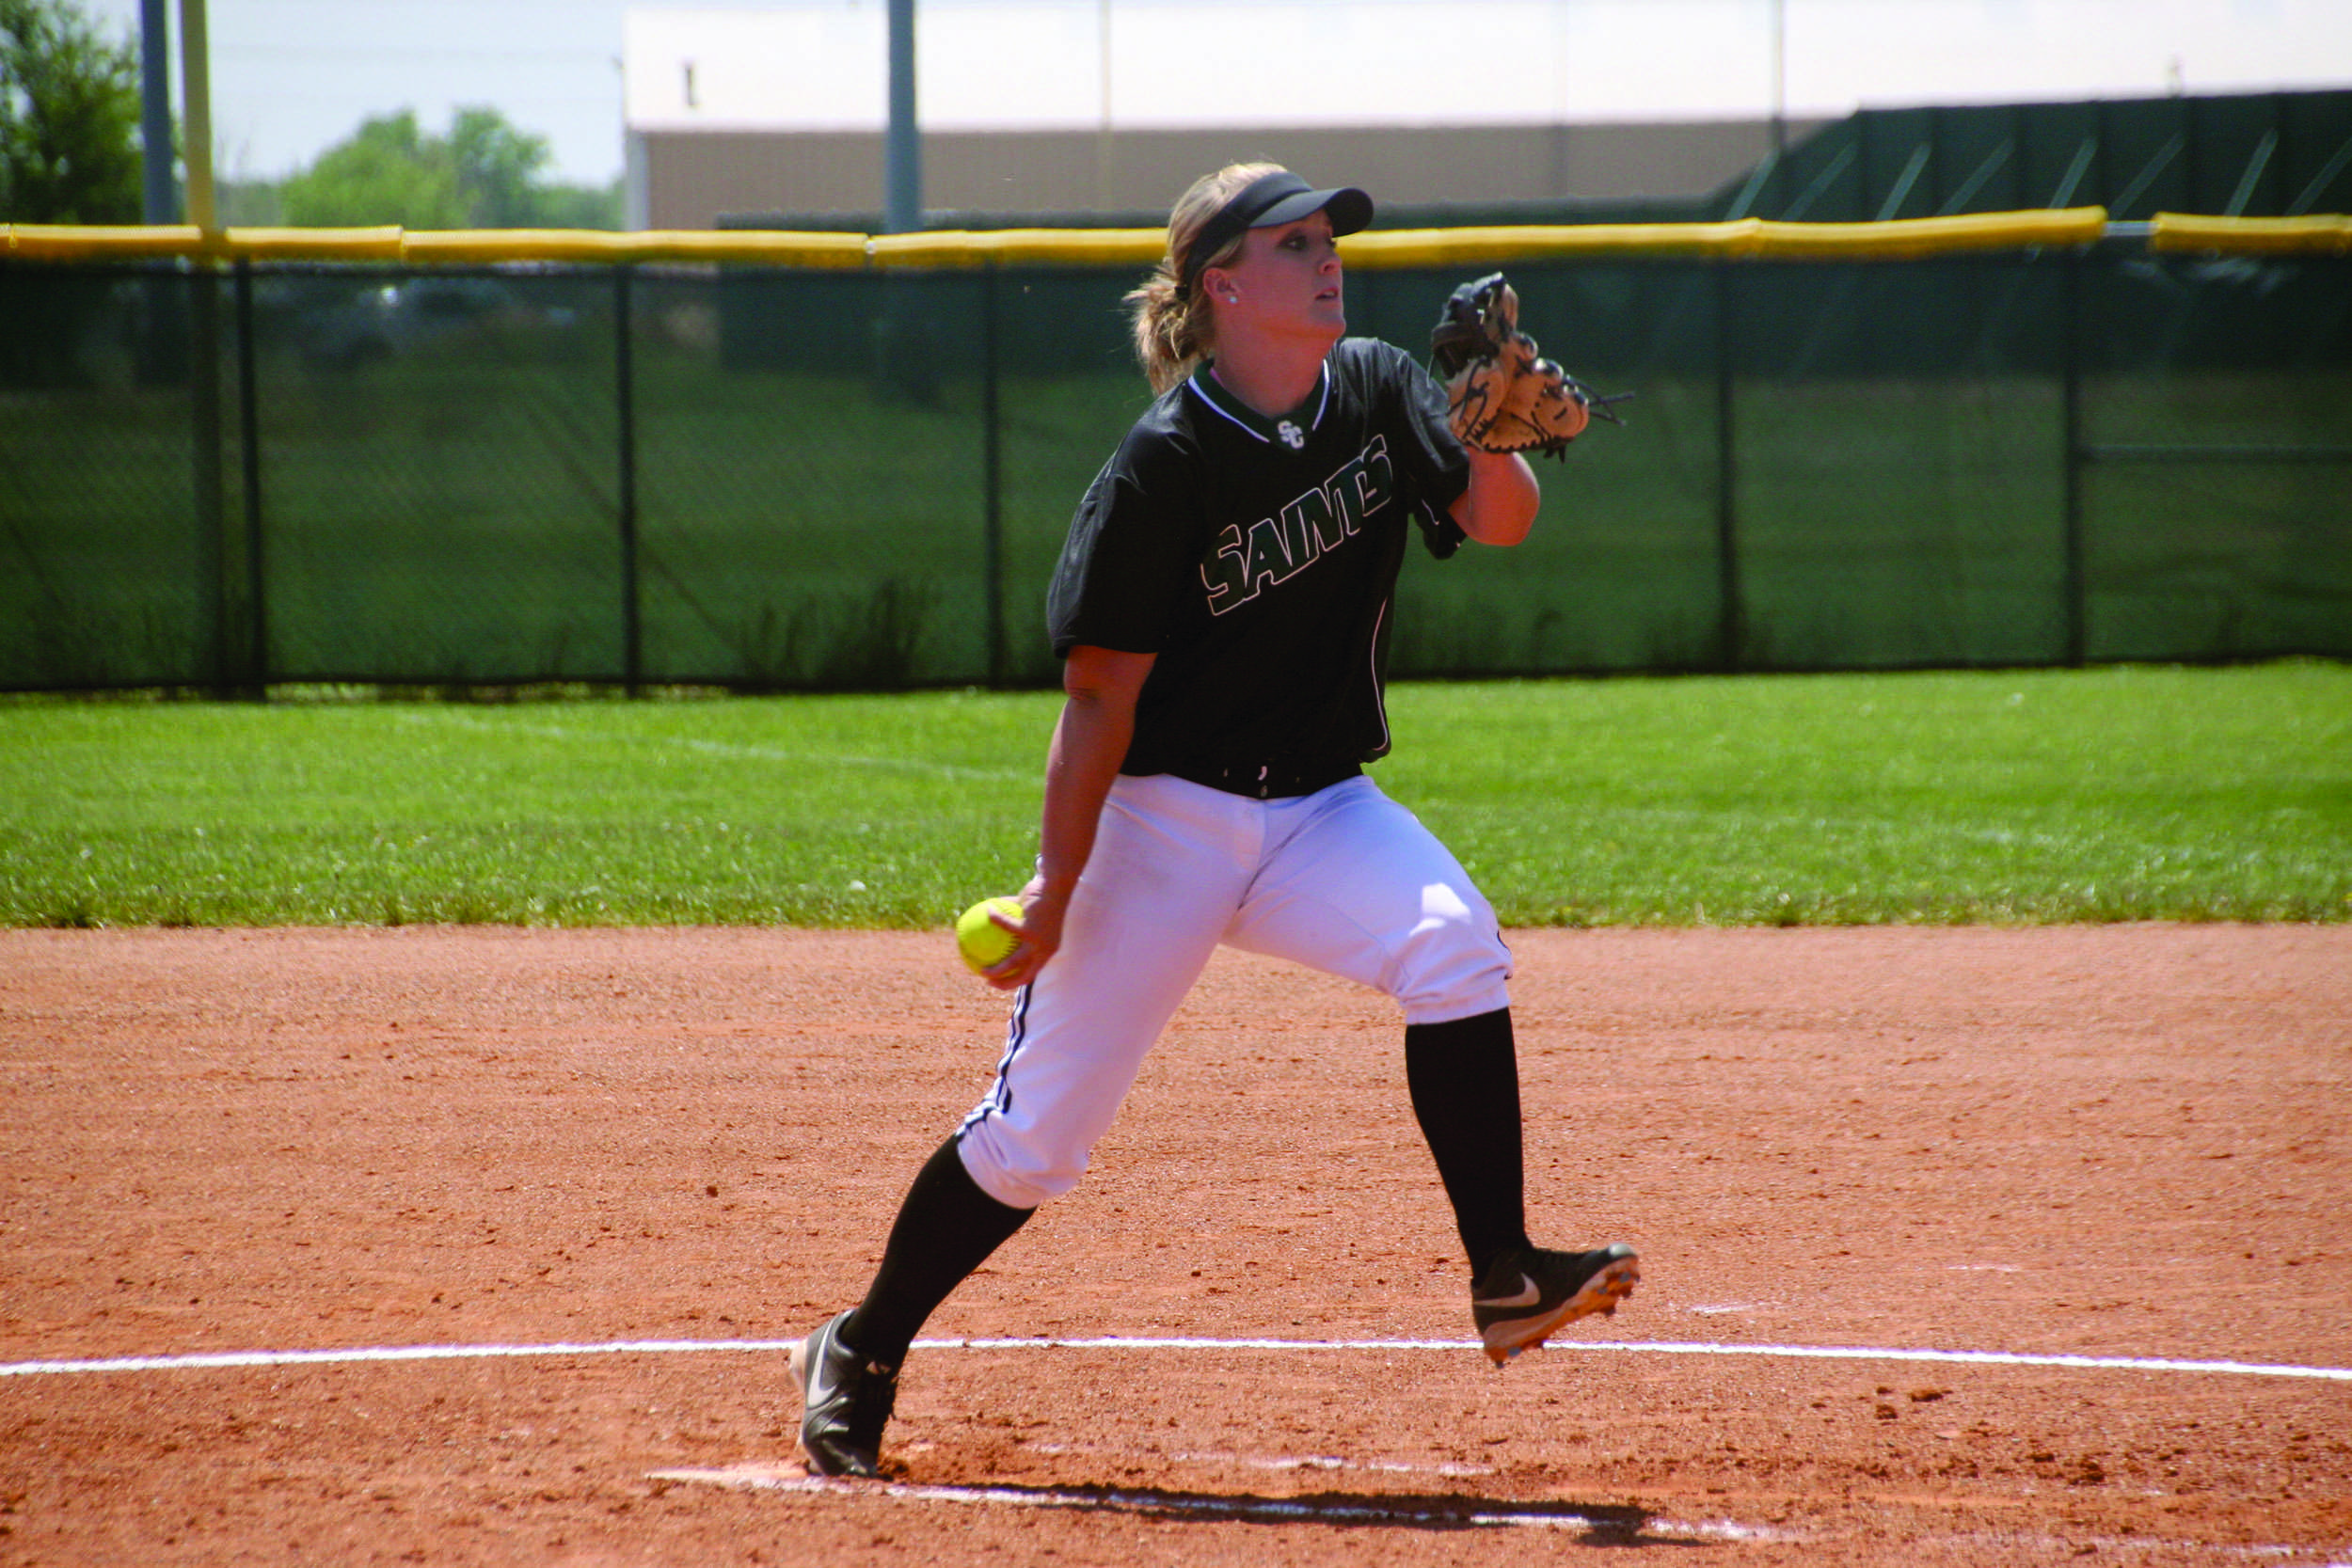 Courtesy photo/Roy Allen